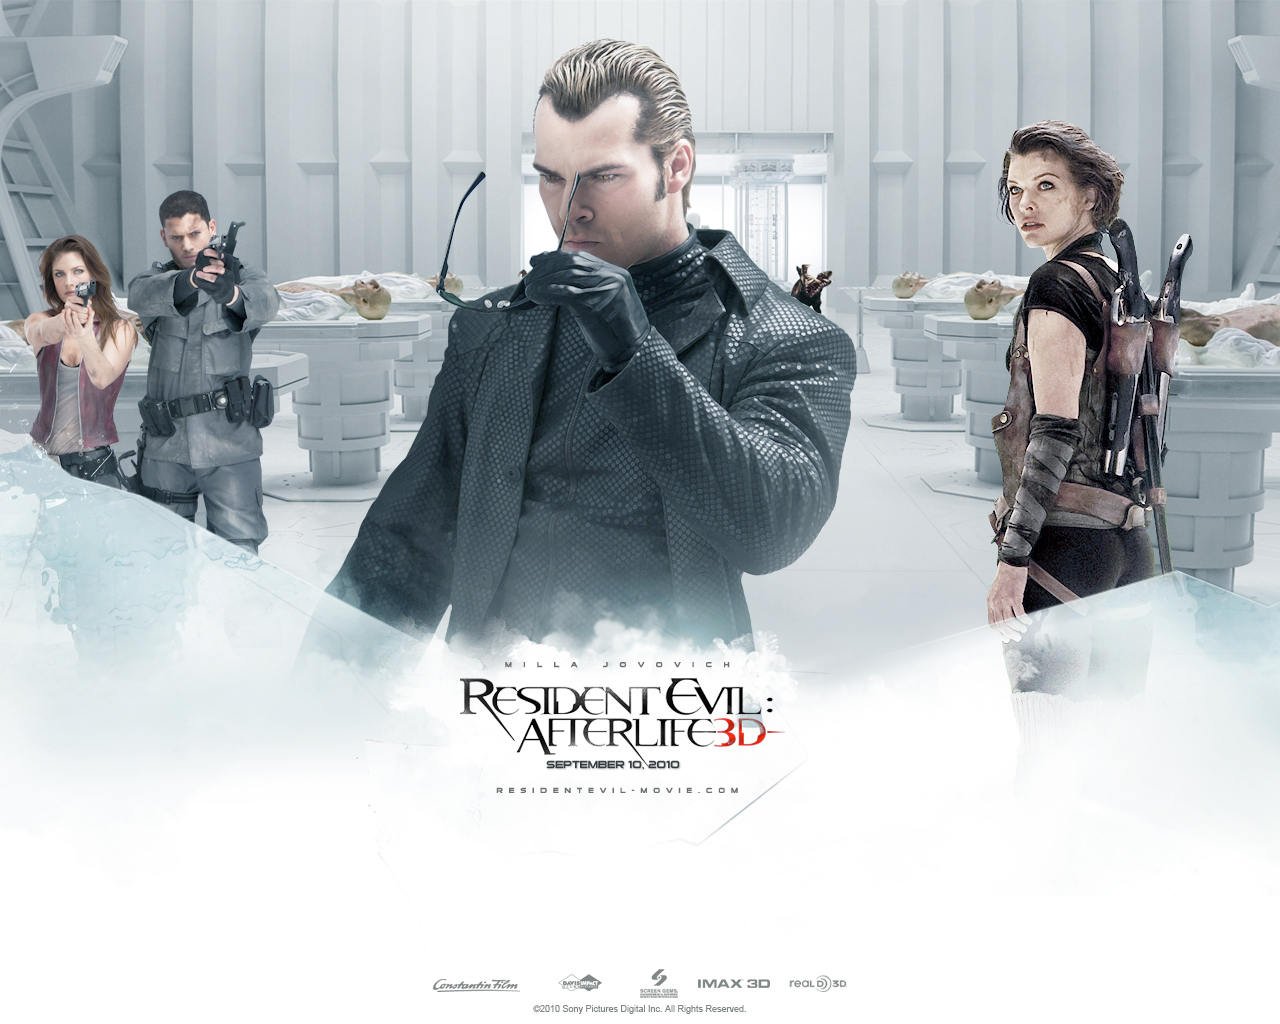 Photos Resident Evil - Movies Resident Evil 4: Afterlife Milla Jovovich film Movies